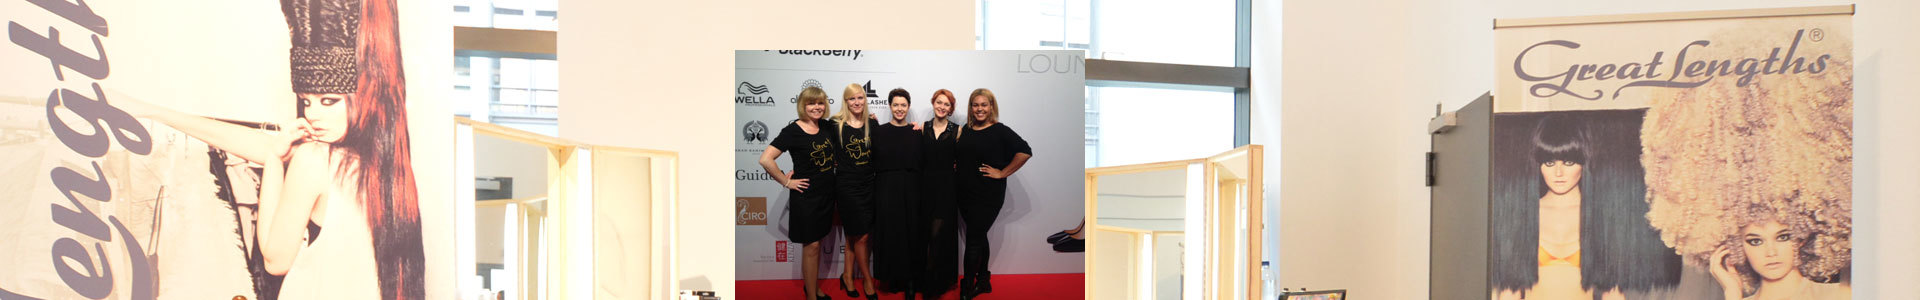 Beauty & Fashion Lounge auf der Fashion Week Berlin (© Great Lengths)